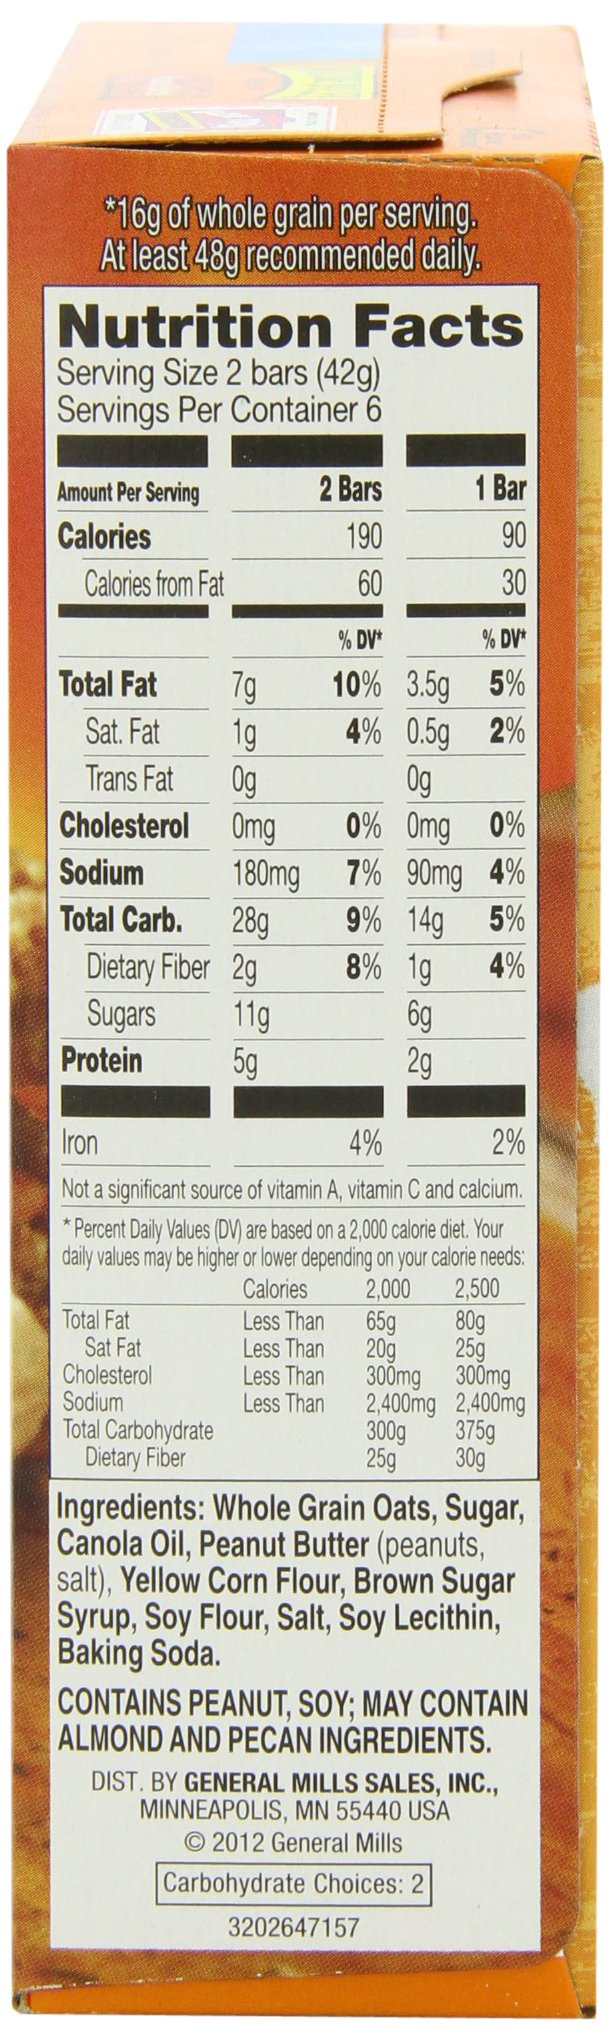 Nature Valley Granola Bars, Crunchy, Peanut Butter, 6 Pouches - 1.49 oz, 2-Bars Per Pouch (Pack of 6) by Nature Valley (Image #9)